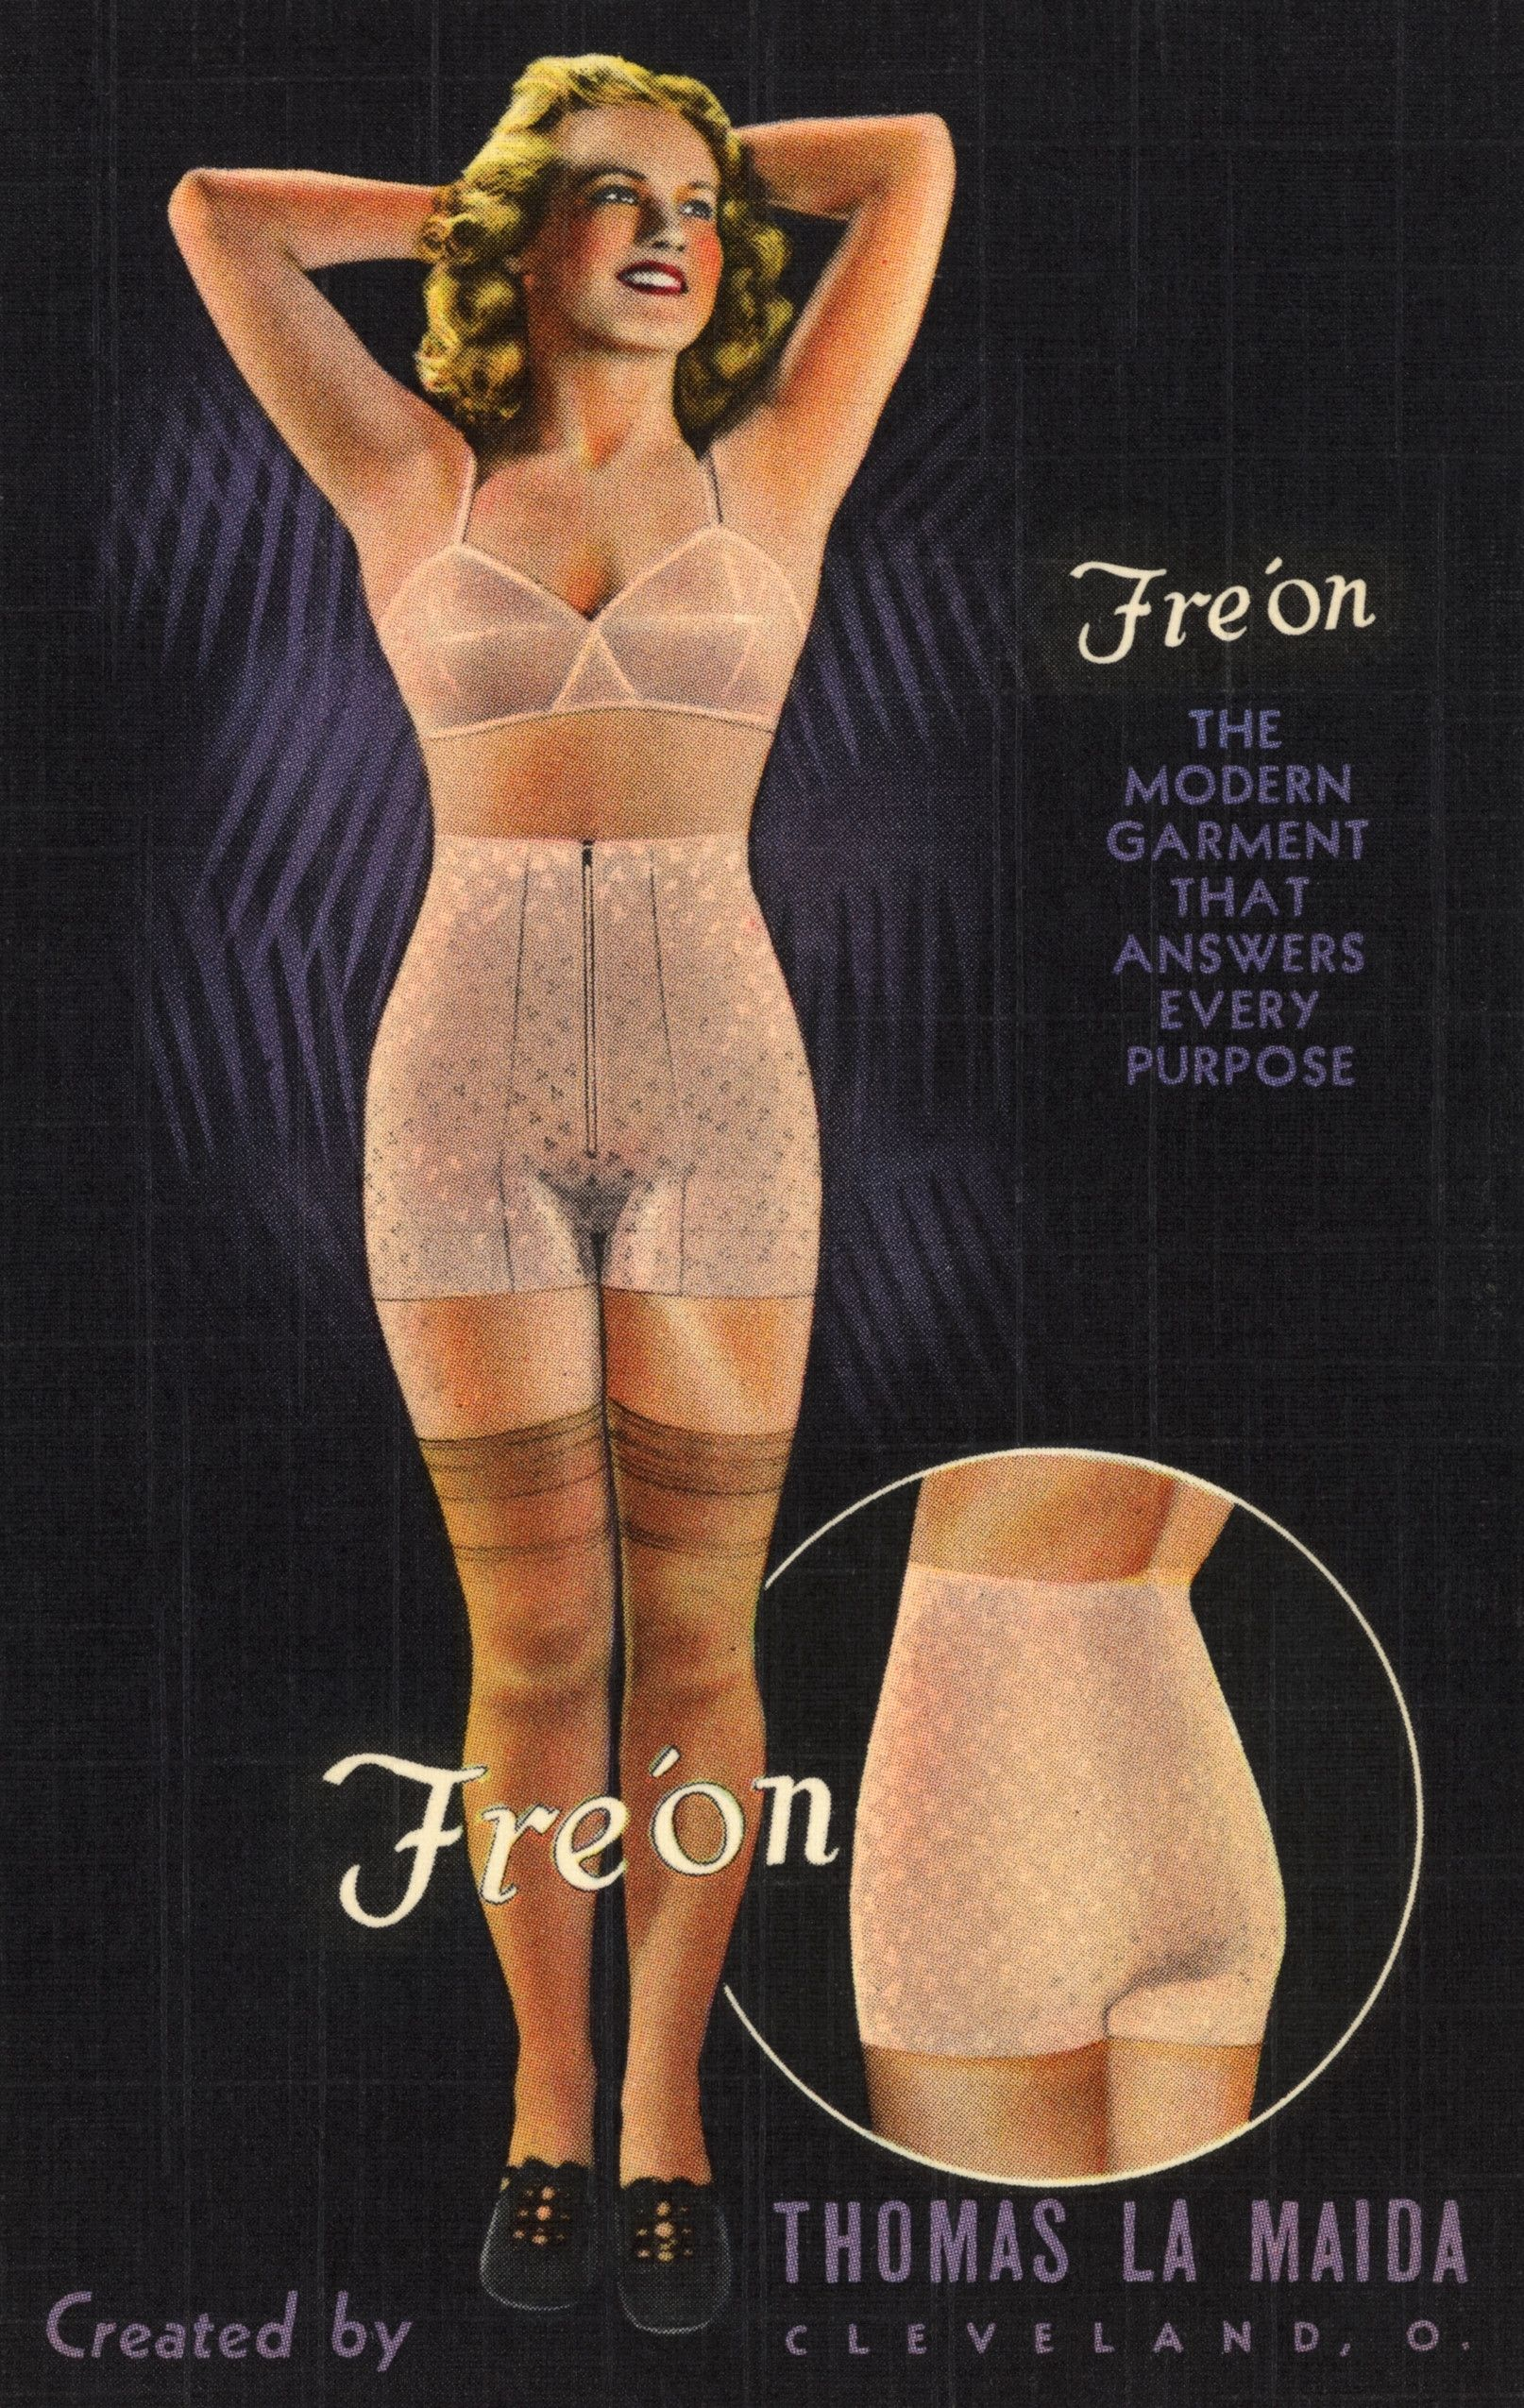 7b0d20dcf40 The Evolution of Lingerie - Lingerie and Underwear Trends Through the Years